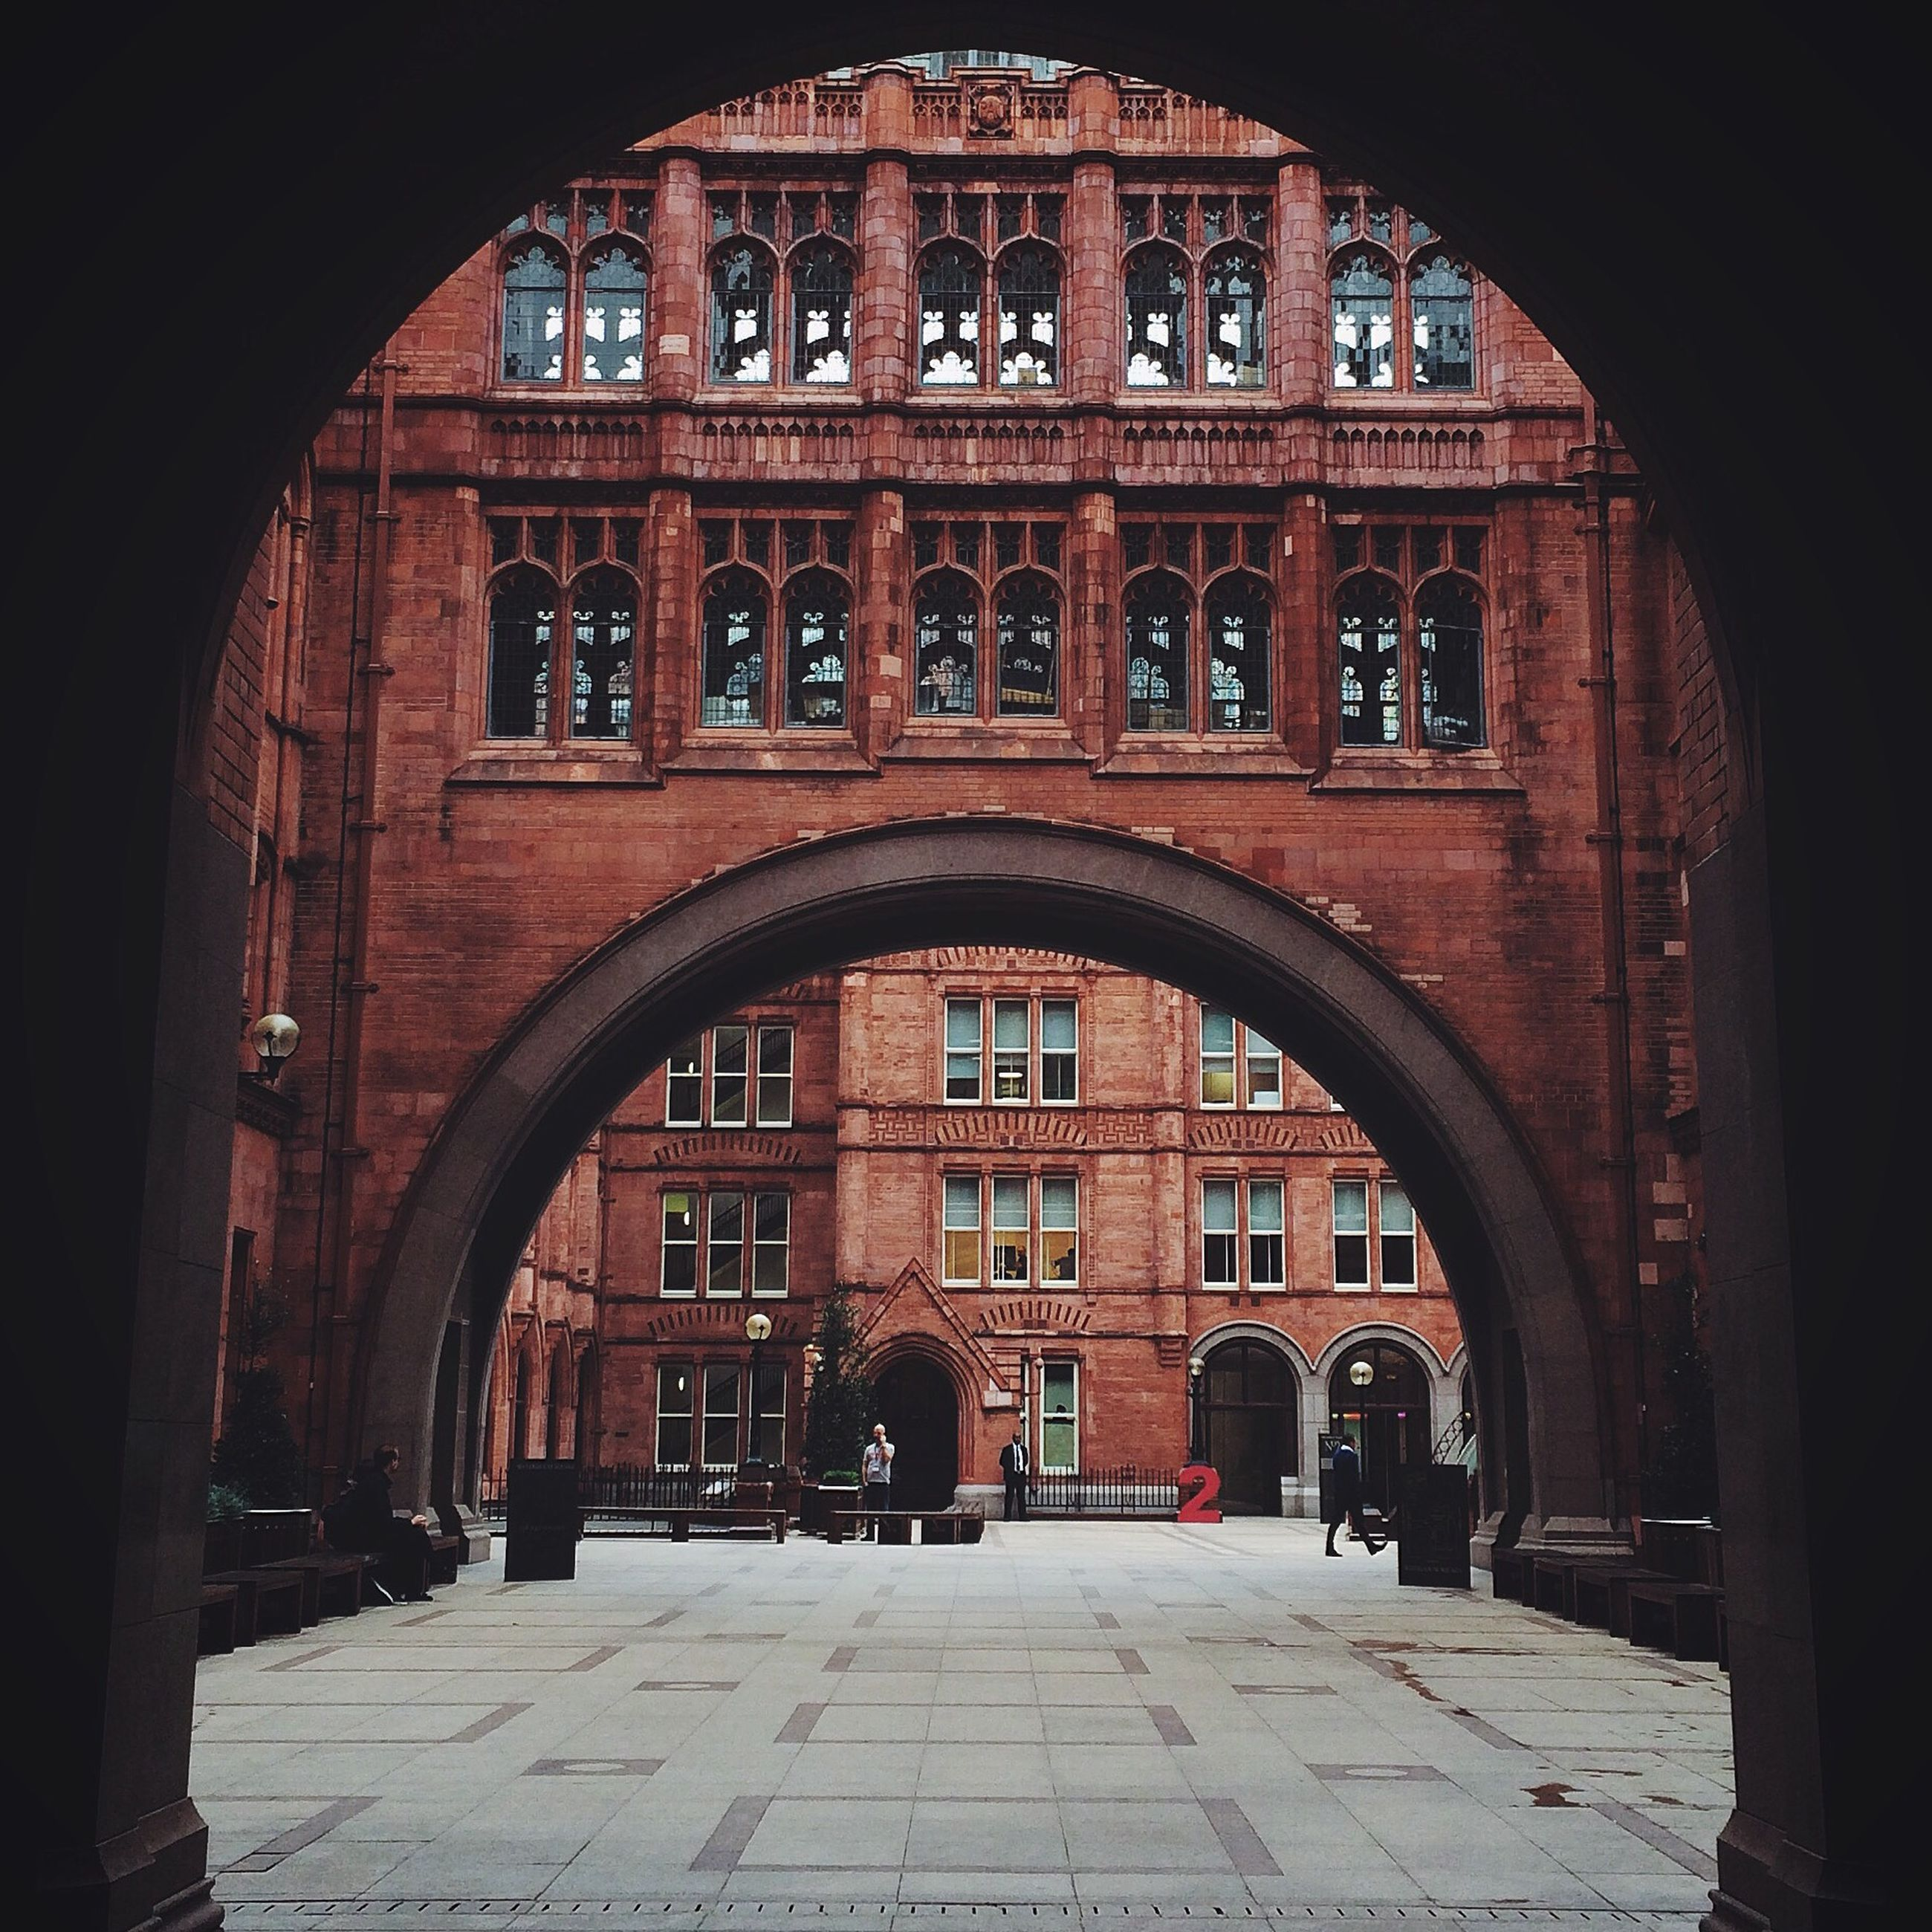 architecture, built structure, arch, building exterior, entrance, the way forward, window, building, archway, door, history, brick wall, facade, cobblestone, old, day, city, street, arched, diminishing perspective